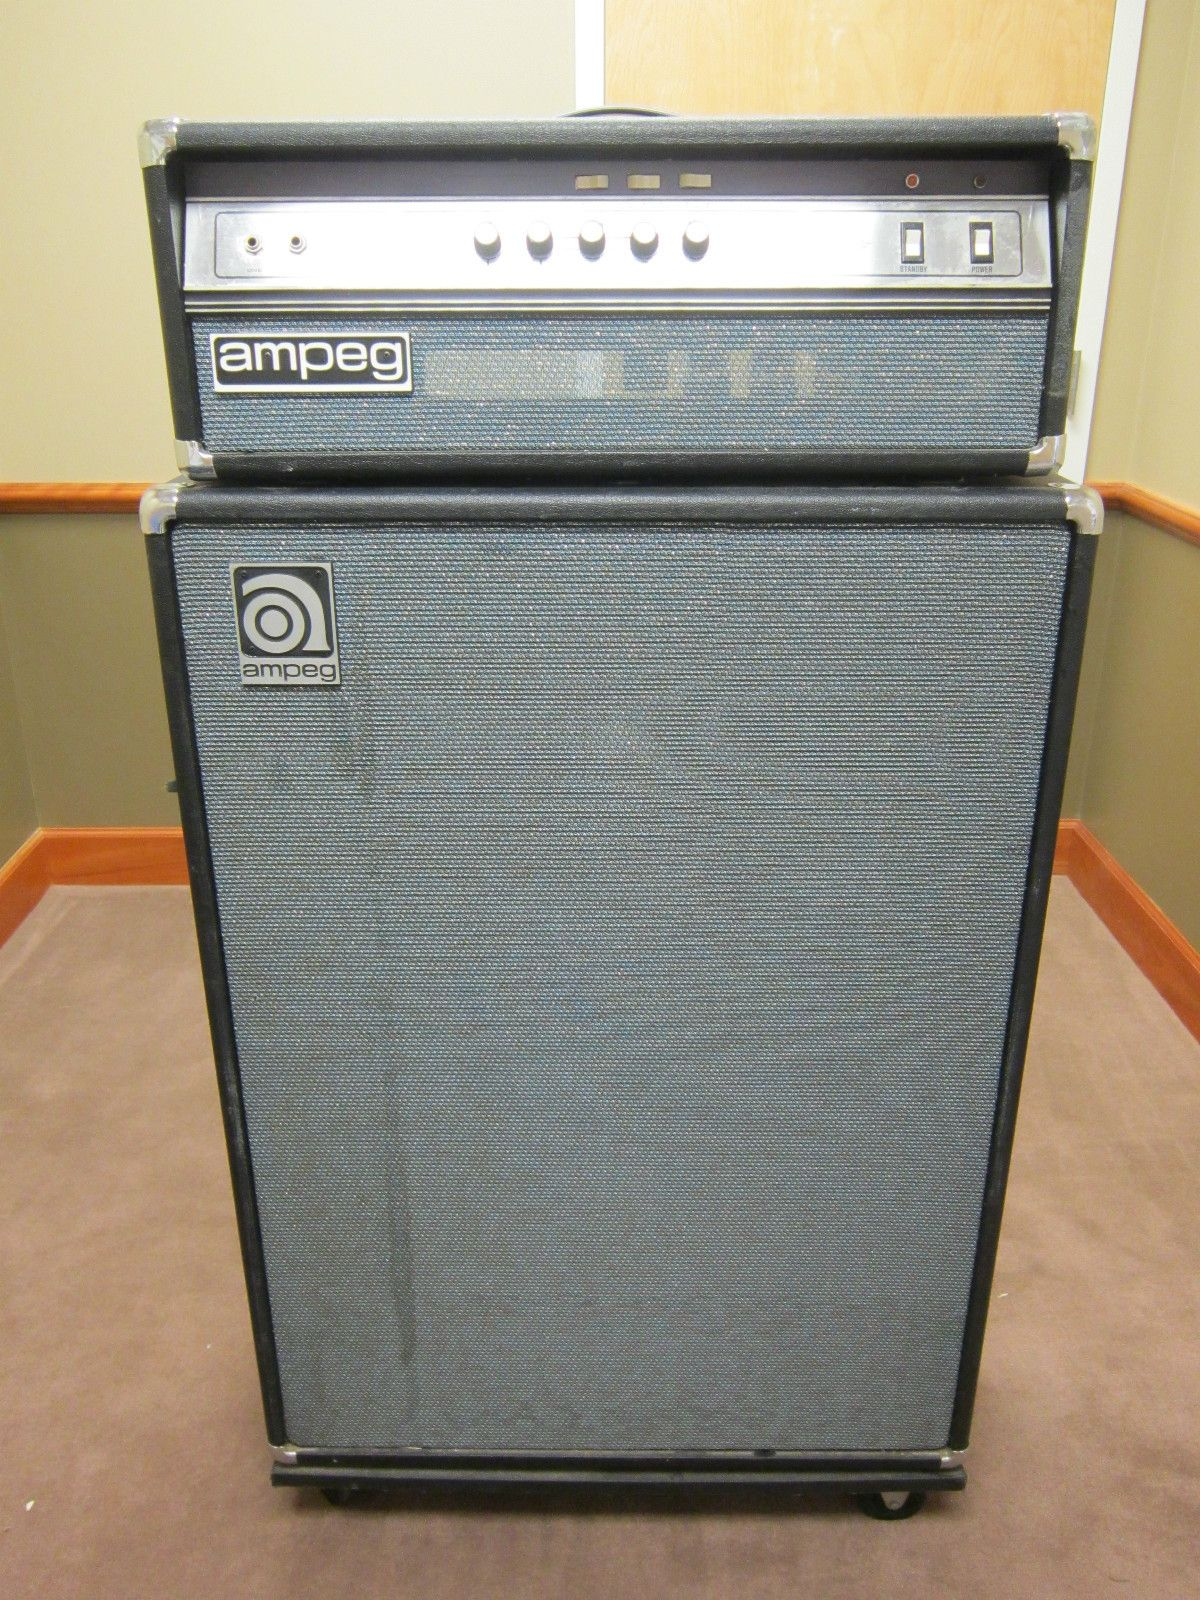 Ampeg V4B Bass Amp - As close as possible to the tone of the B-15N ...